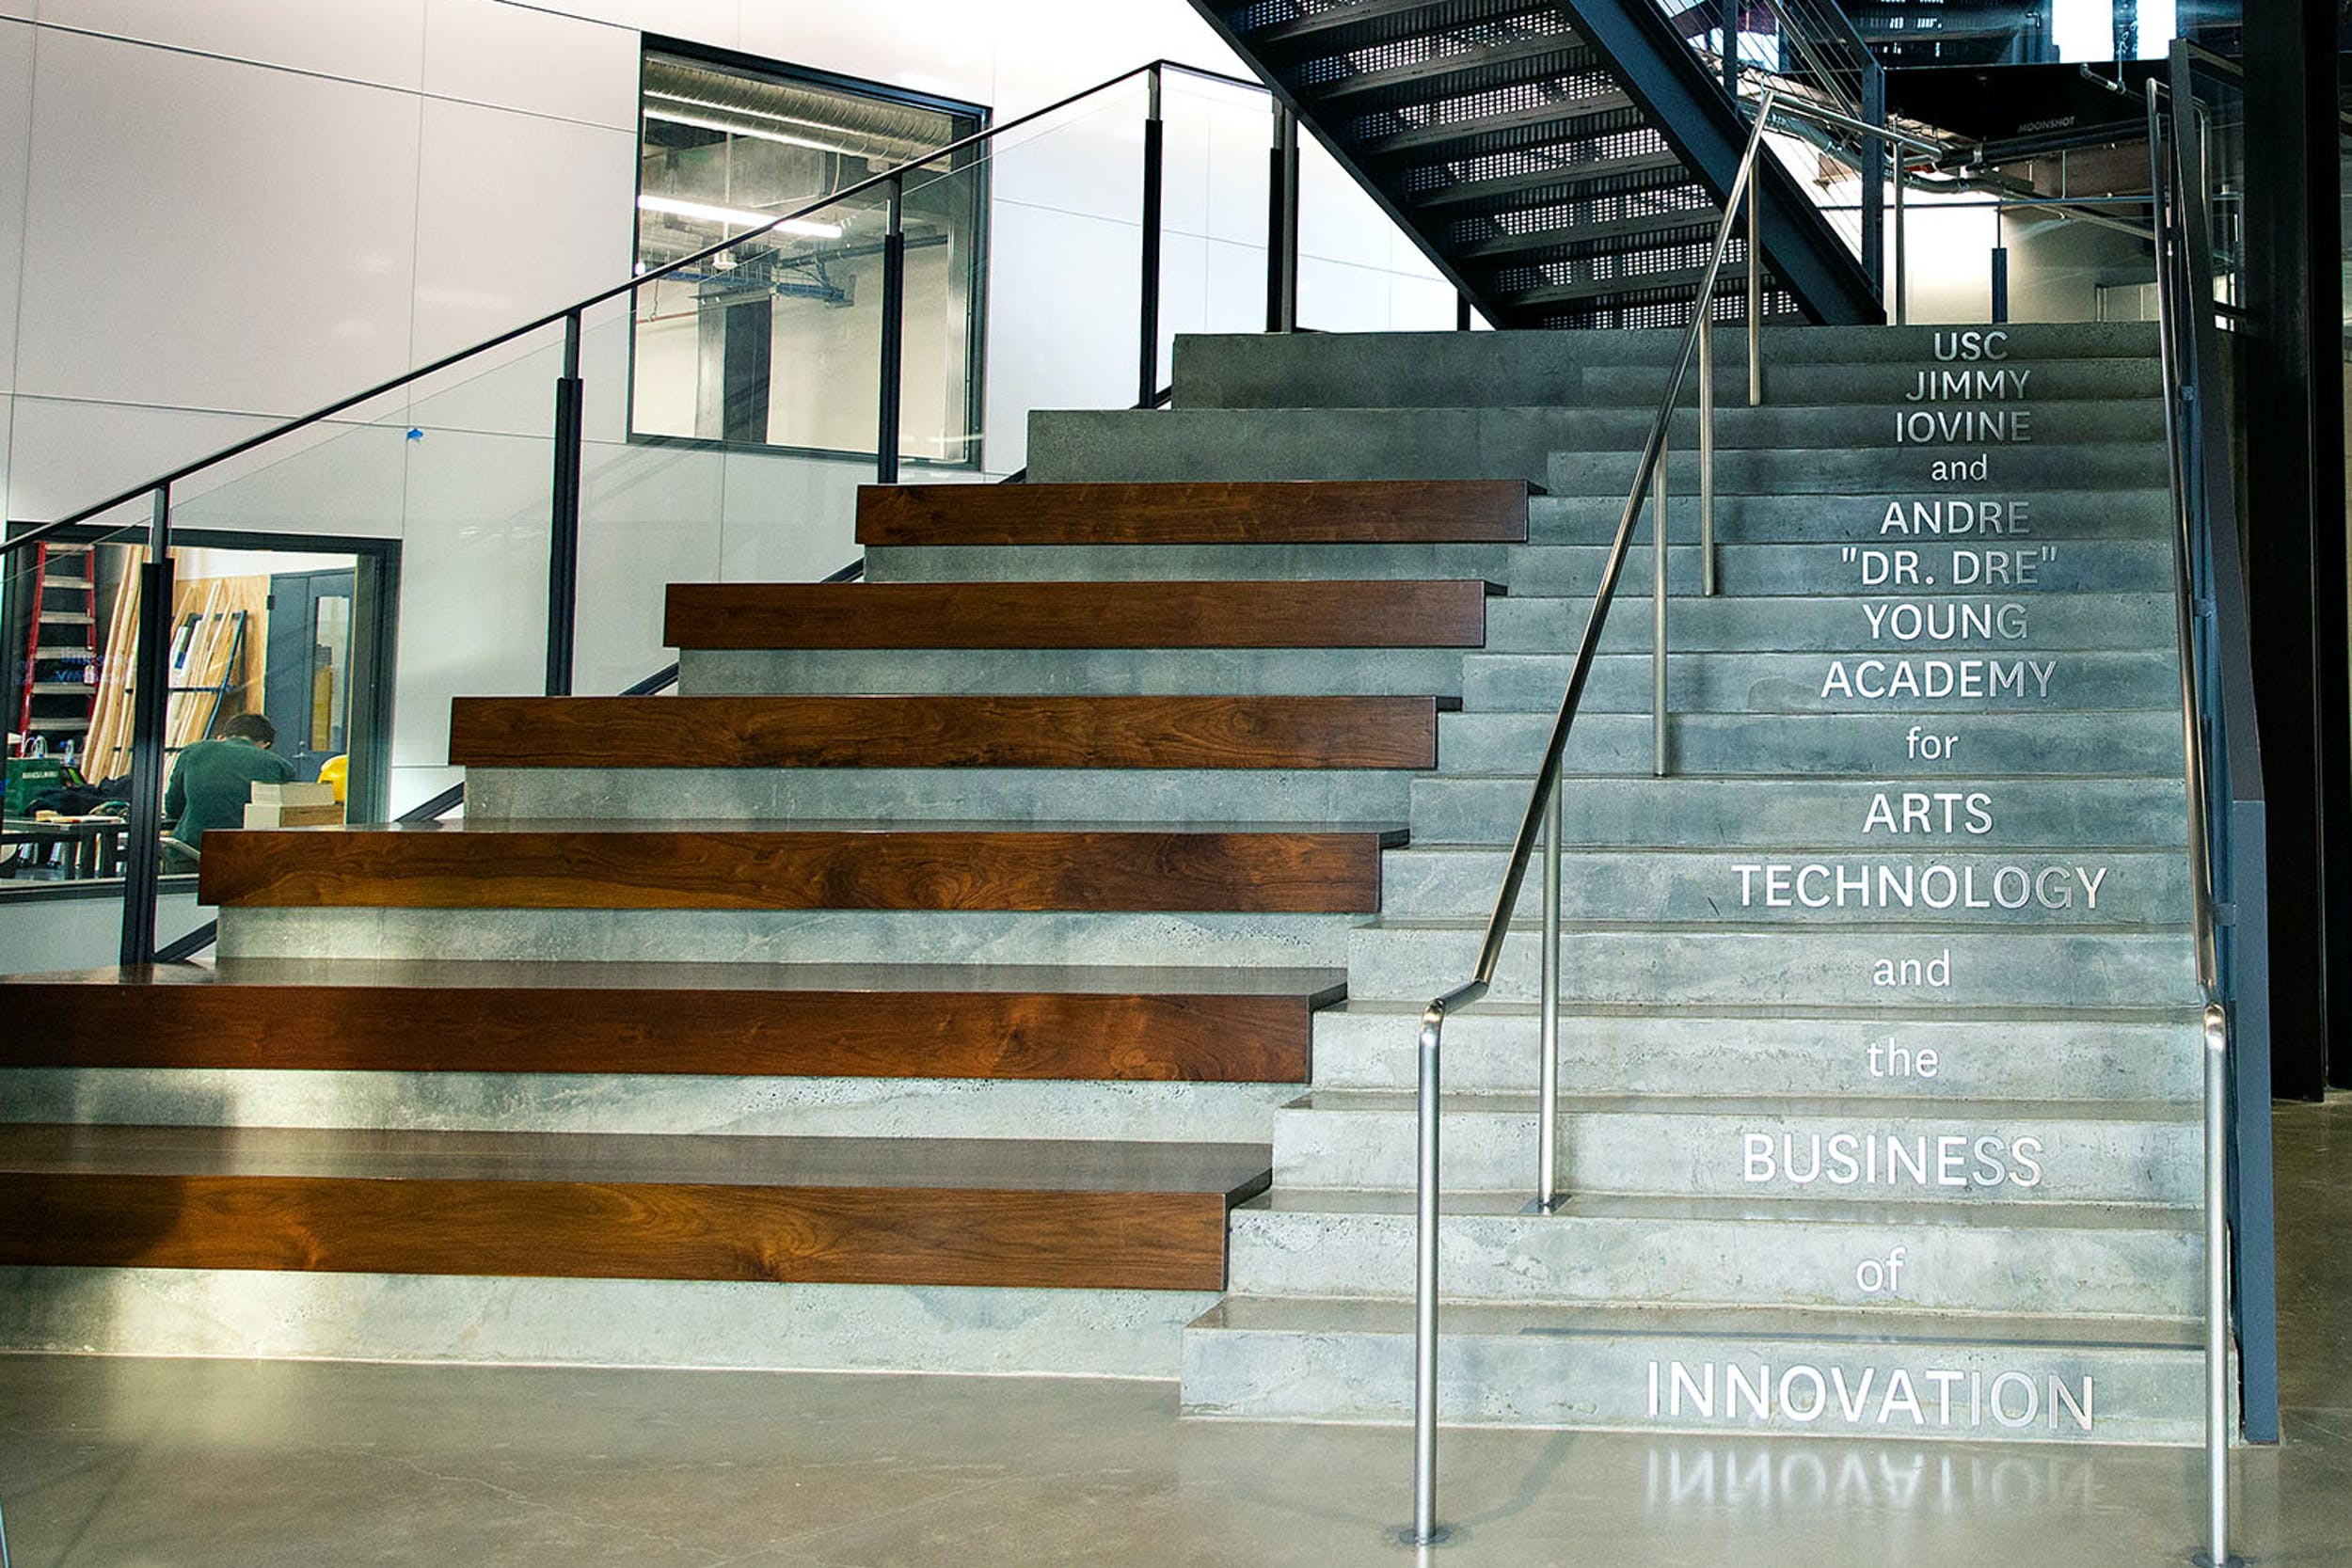 The central grand staircase made of wood, cement with steel words spelling out school name on each stair